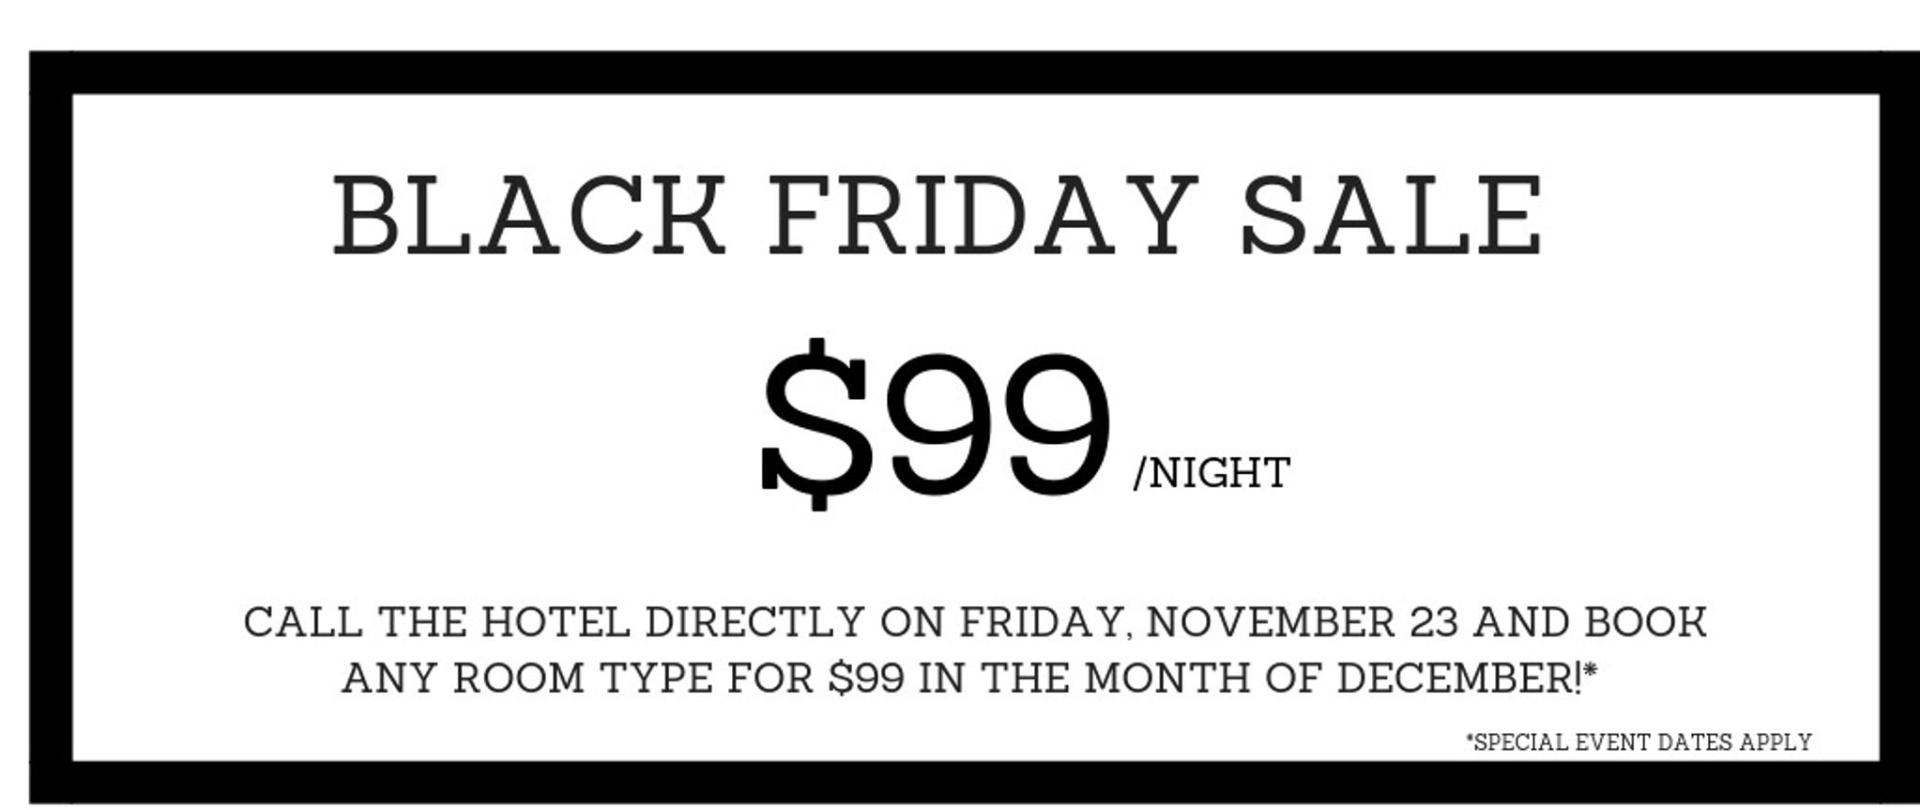 BLACK FRIDAY SALE front page (5).png